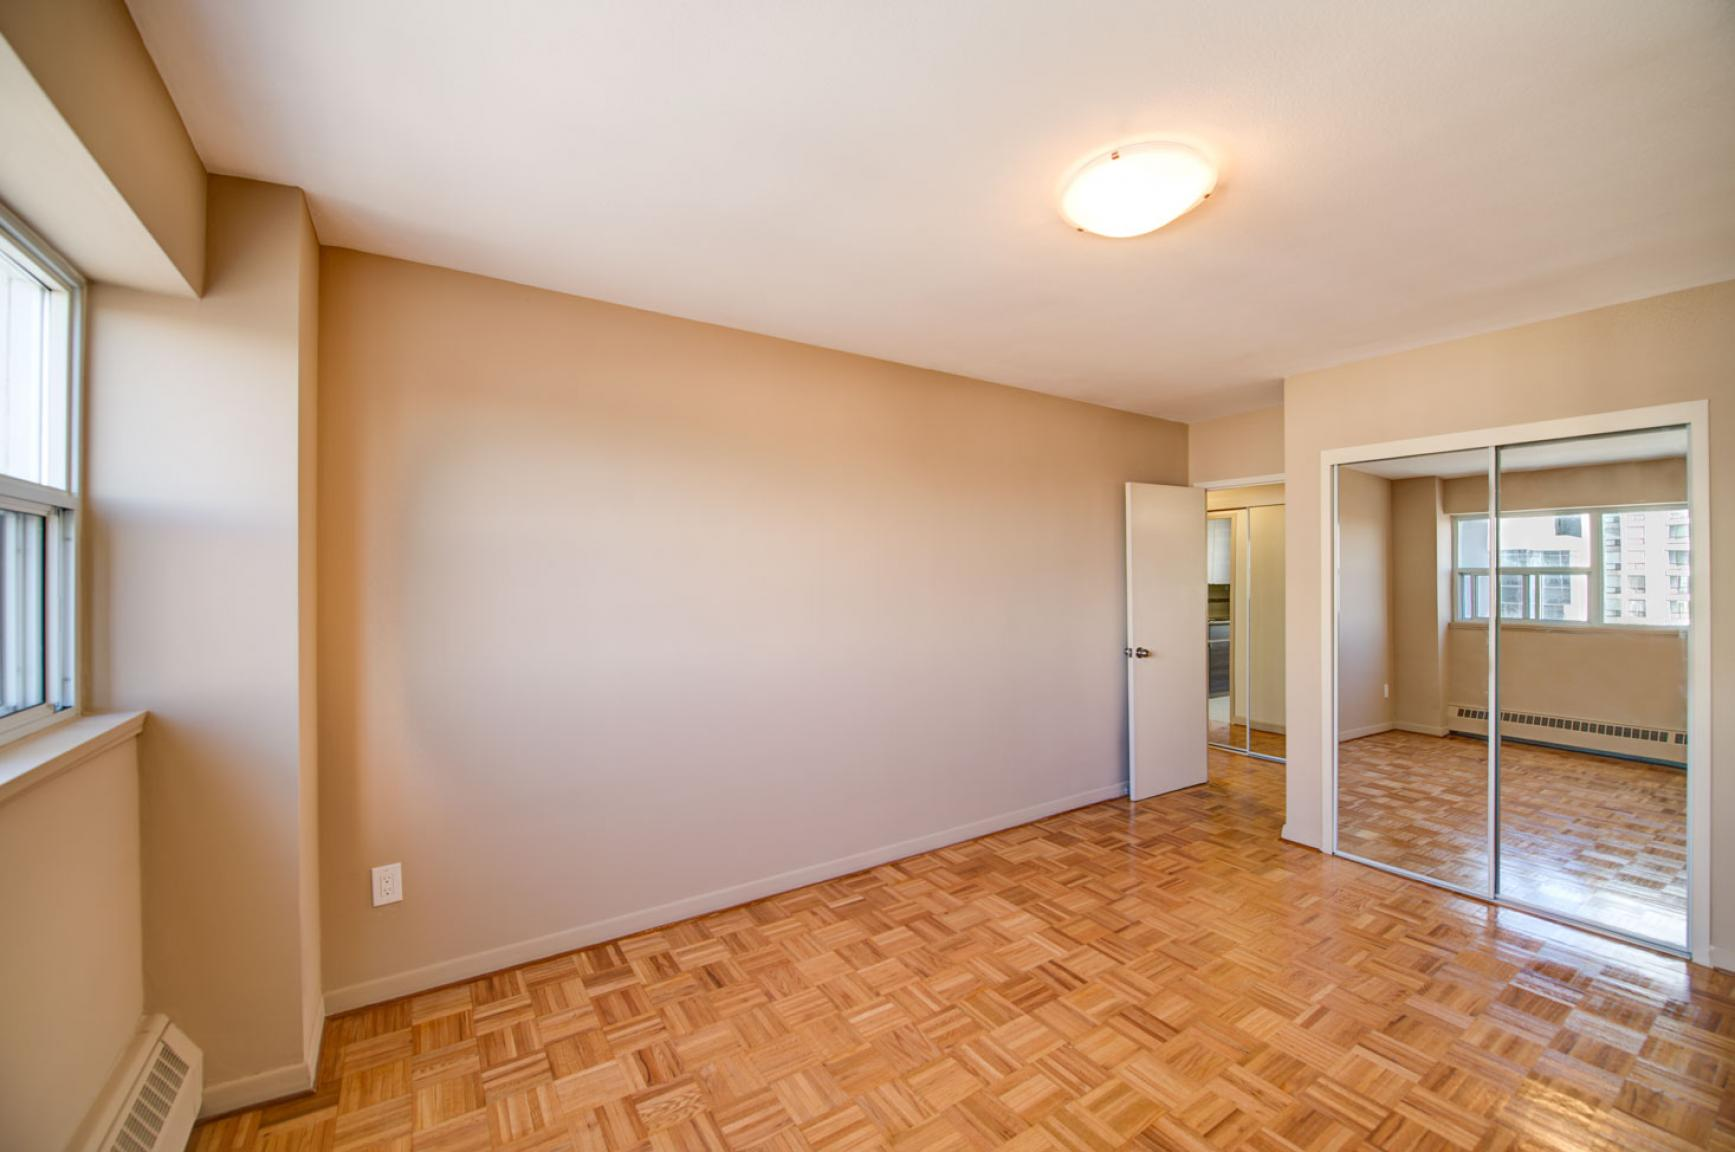 Studio / Bachelor Apartments for rent in Toronto at Dunfield Tower - Photo 19 - RentersPages – L138878